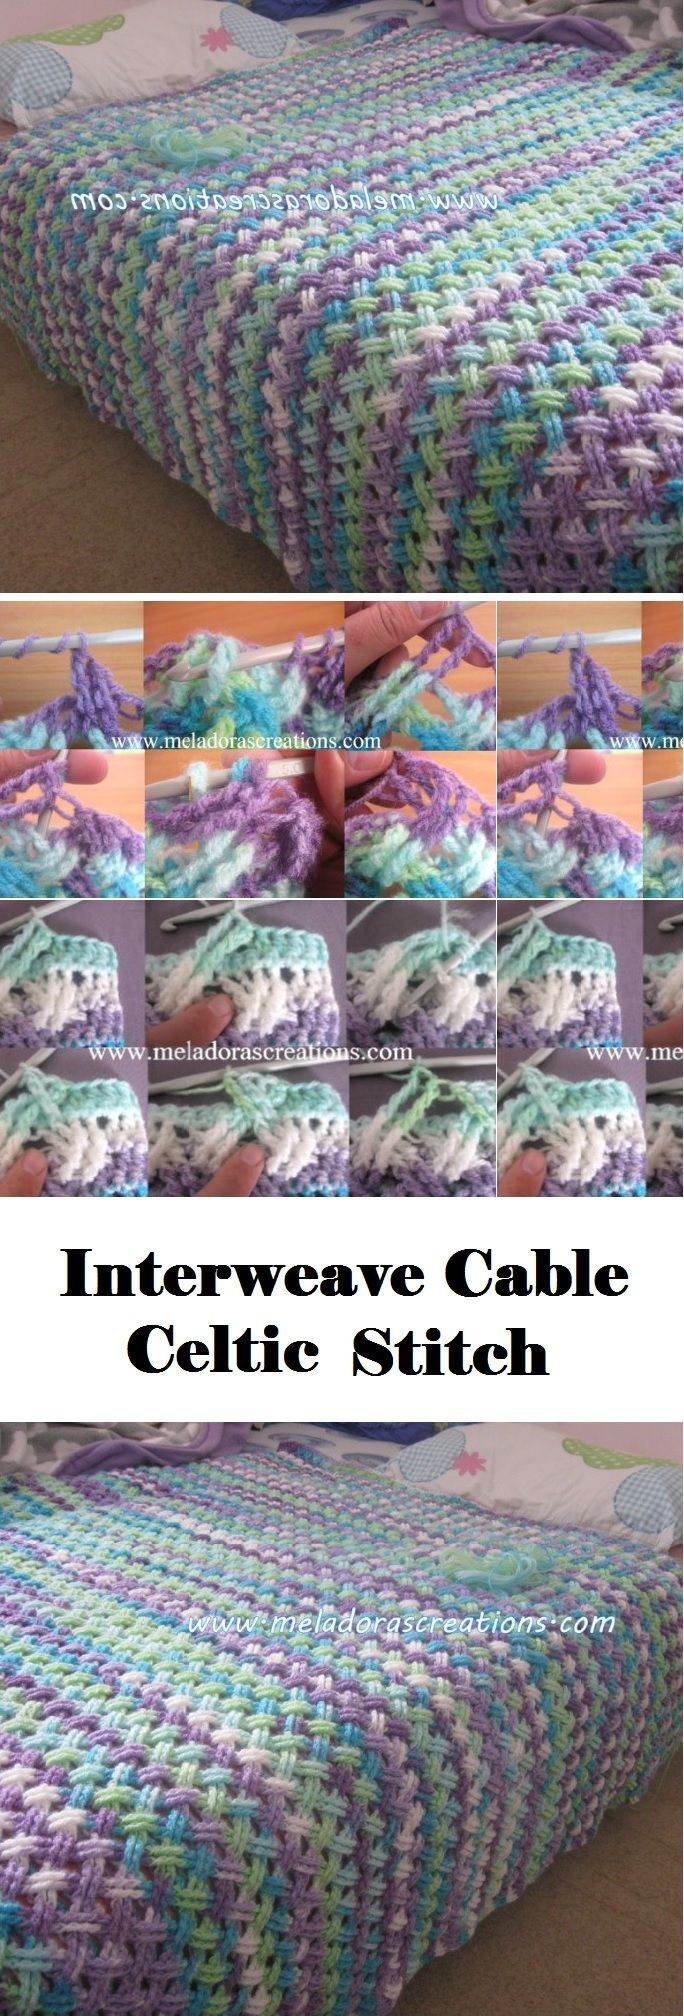 Interweave Cable Celtic Stitch (Blanket) – Love this woven look!